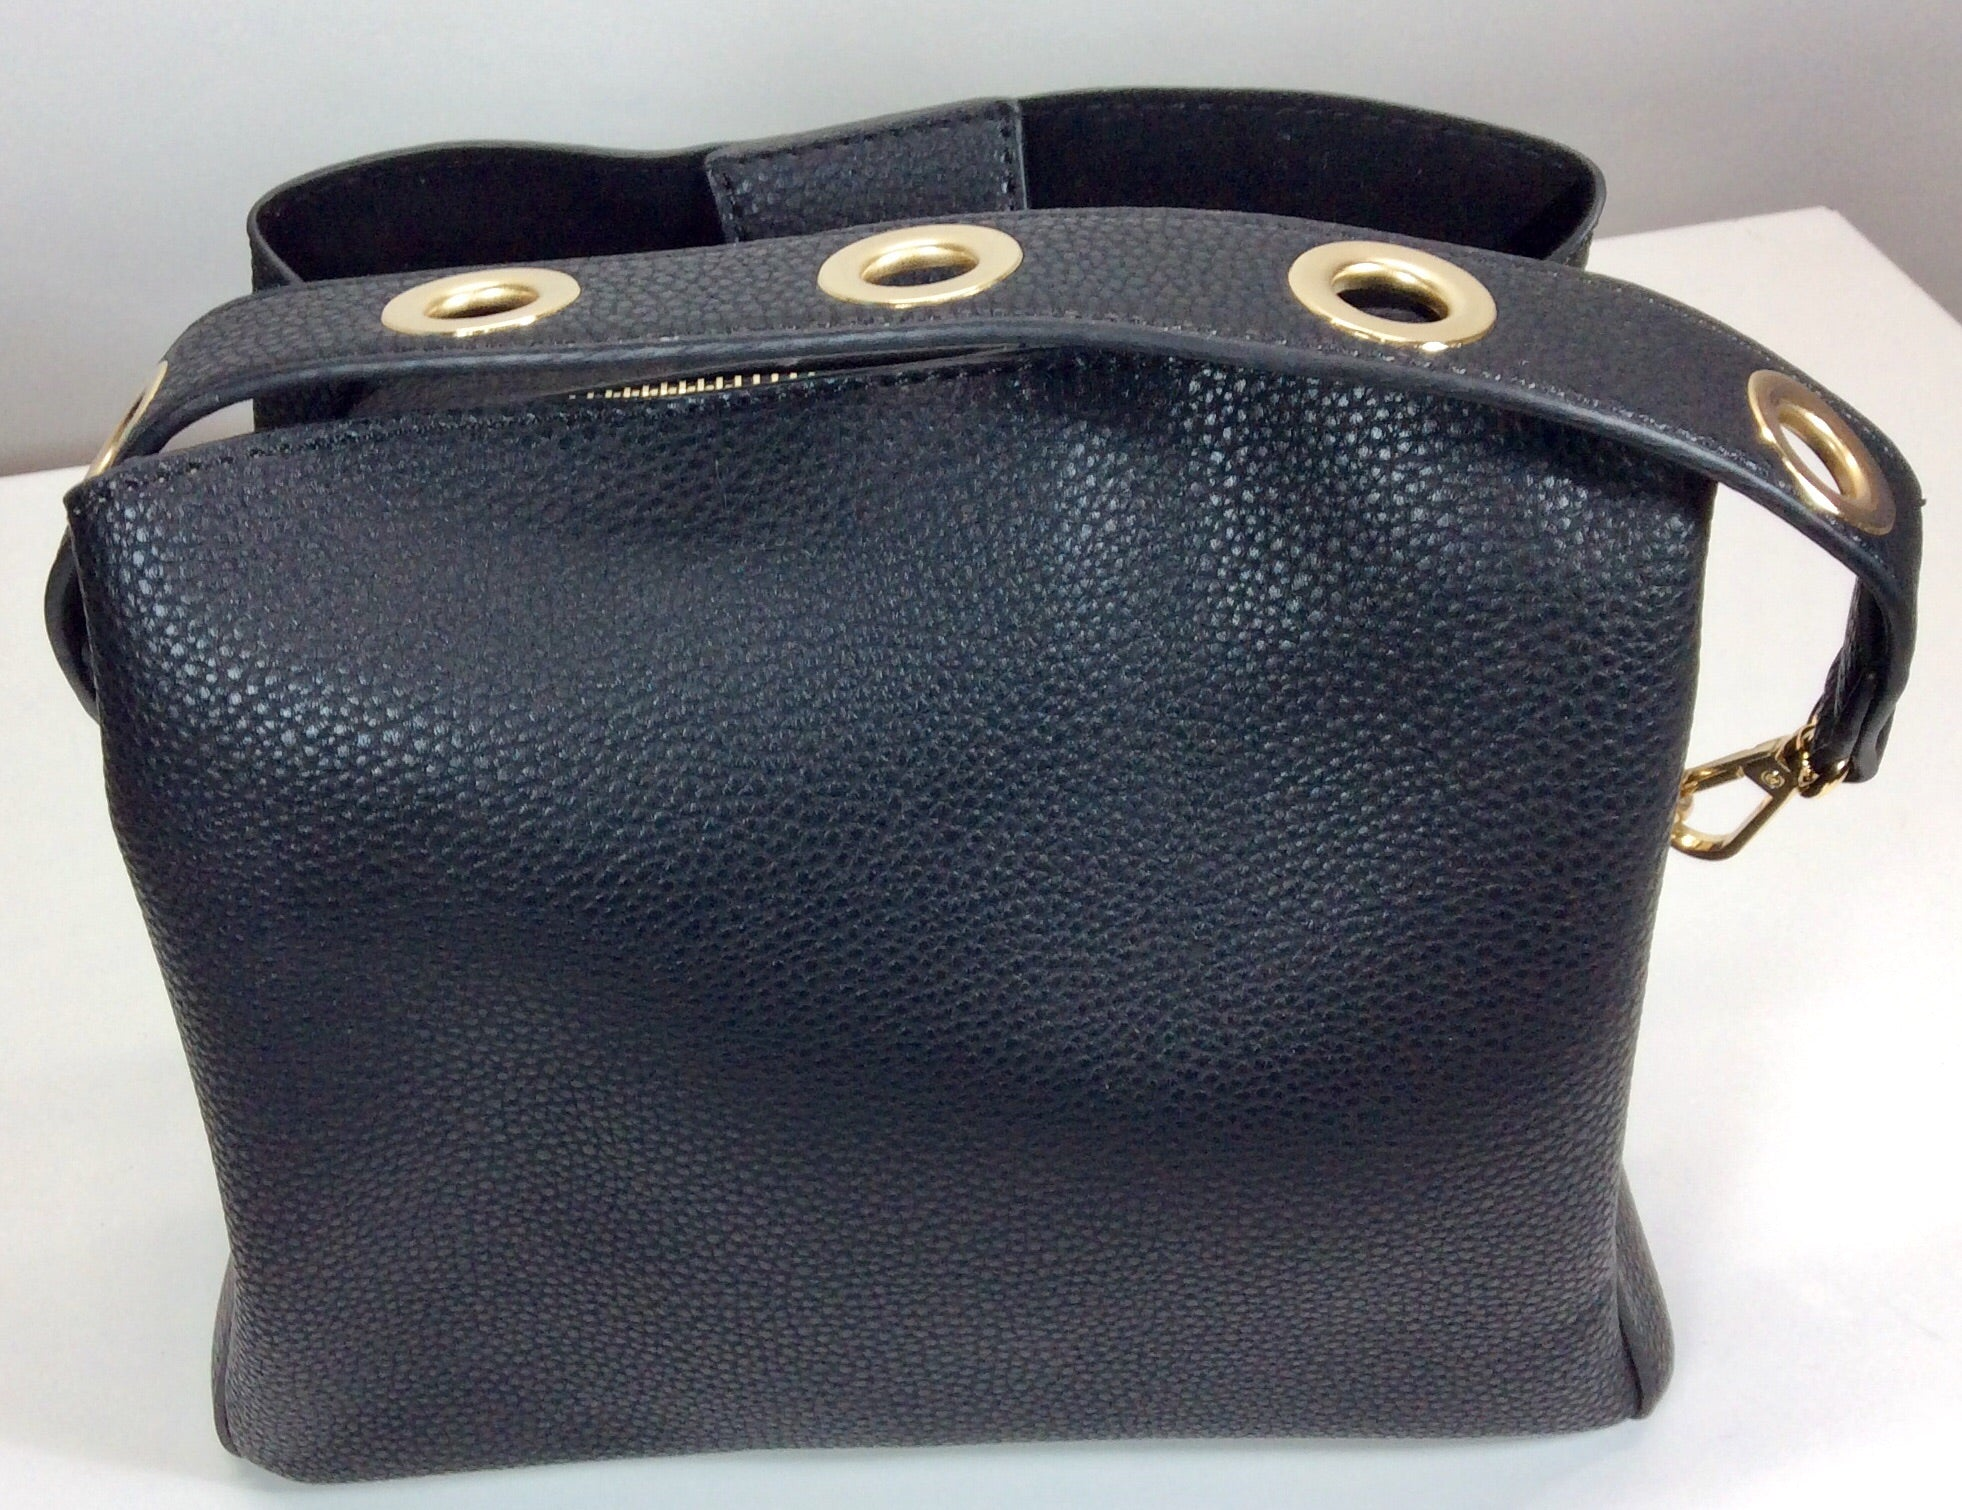 Gorgeous small black bag with short or long strap